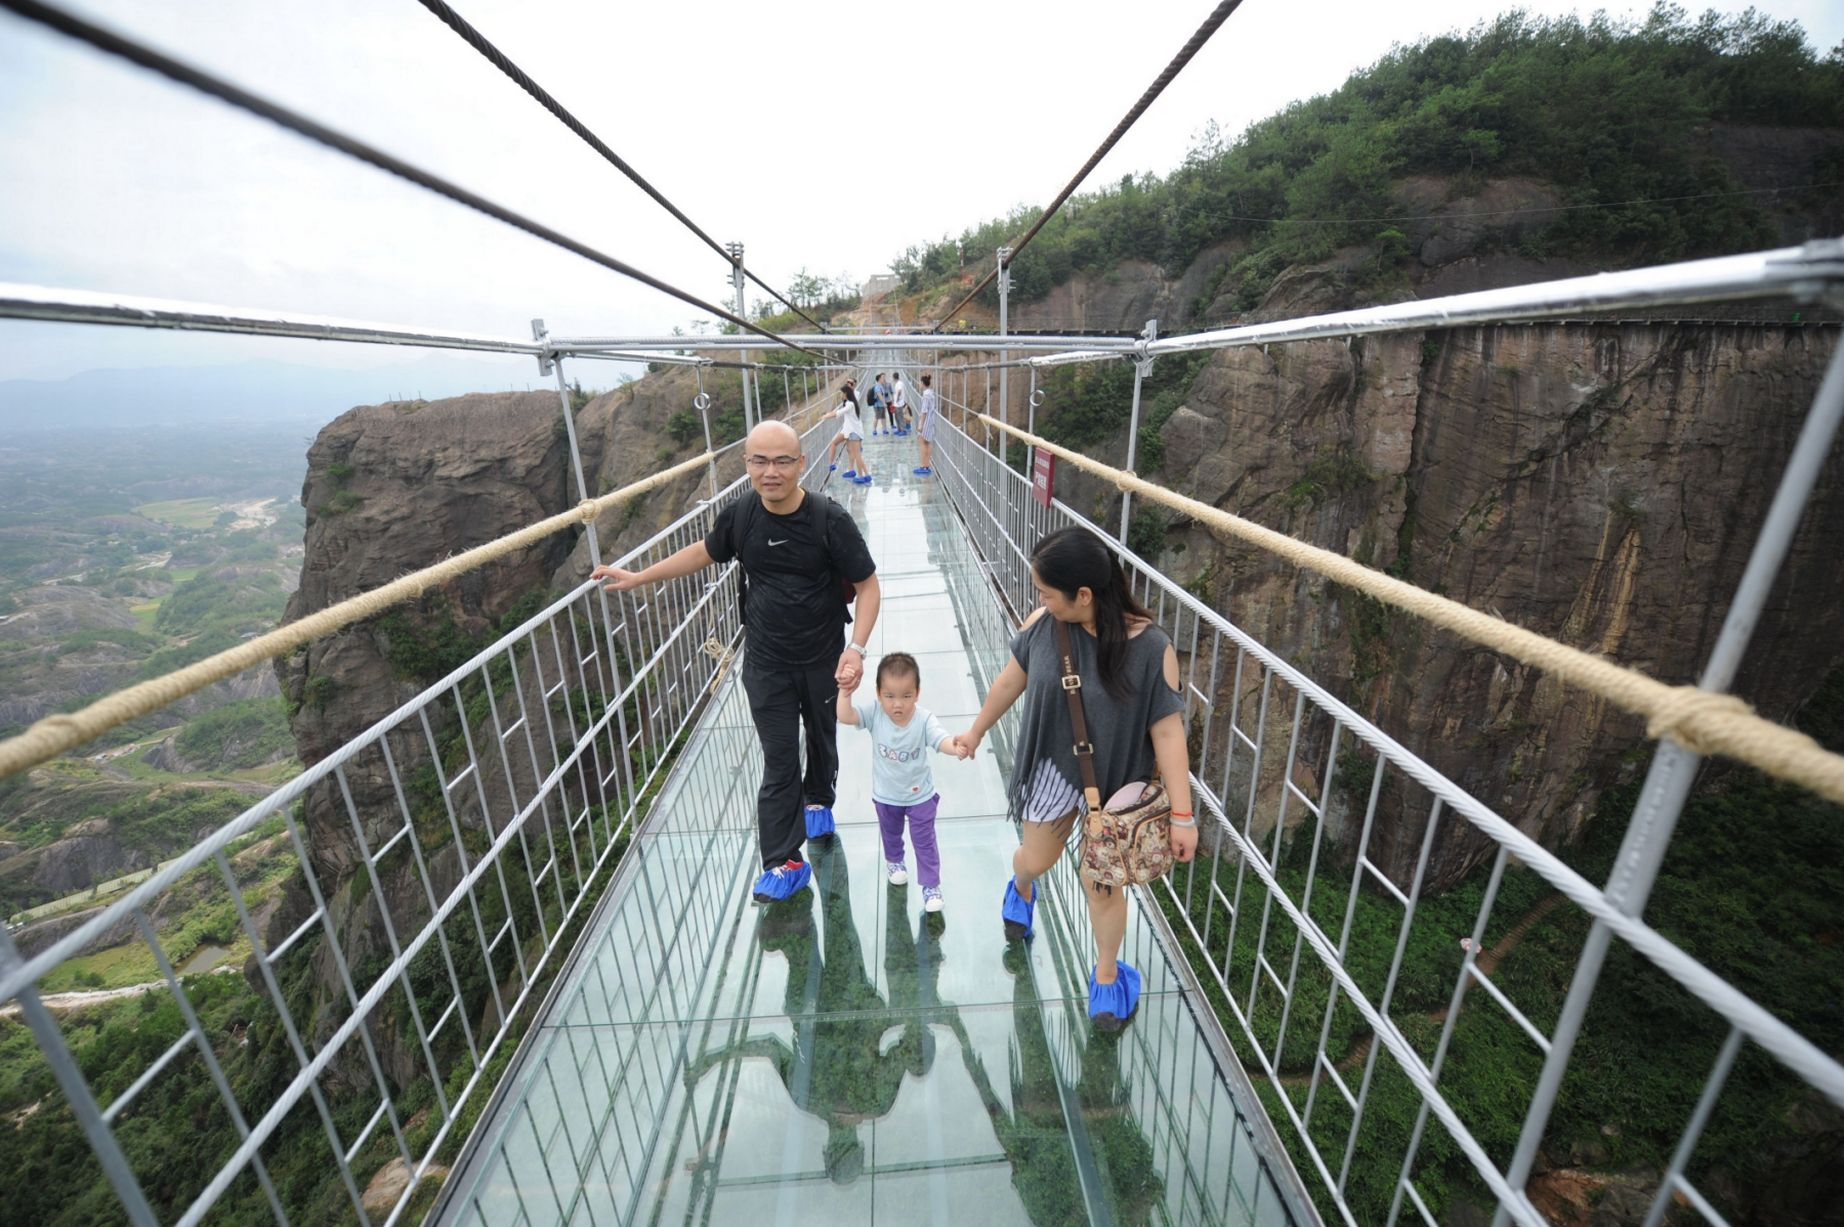 13 Pics Of A Glass Bridge That Strikes Fear In Tourists' Hearts 12